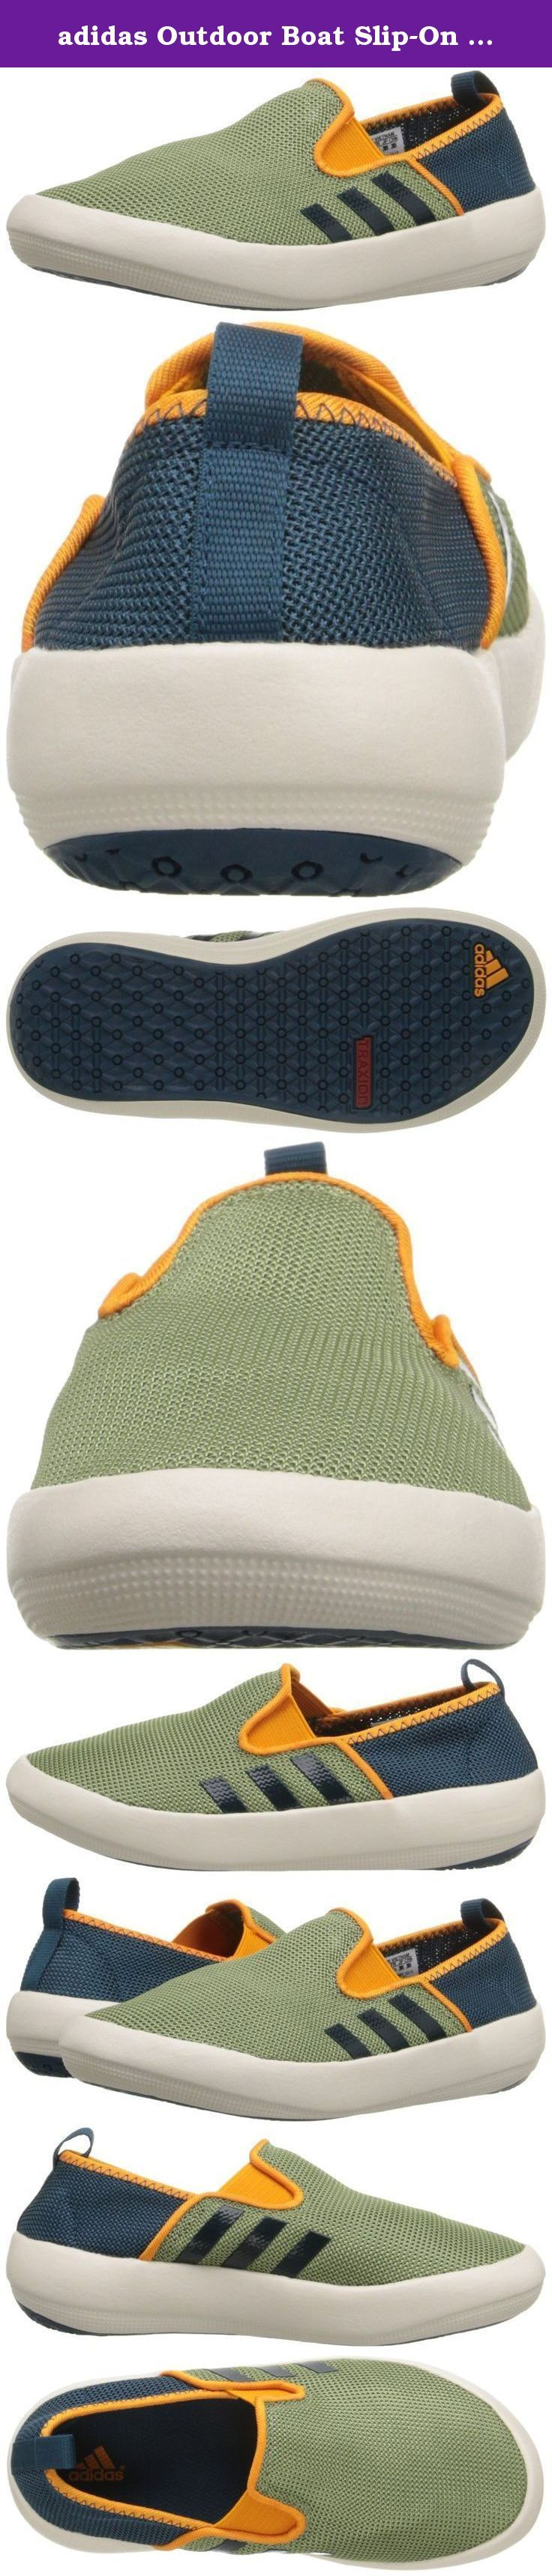 adidas Outdoor Boat Slip-On Water Shoe (Little Kid/Big Kid), Shift Olive/Mineral/Equipment Orange, 13.5 M US Little Kid. Half ballerina flat, half boat shoe with a girly summer vibe. This easy slip-on has an elastic strap across the vamp, breathable mesh upper and grippy traxion outsole.